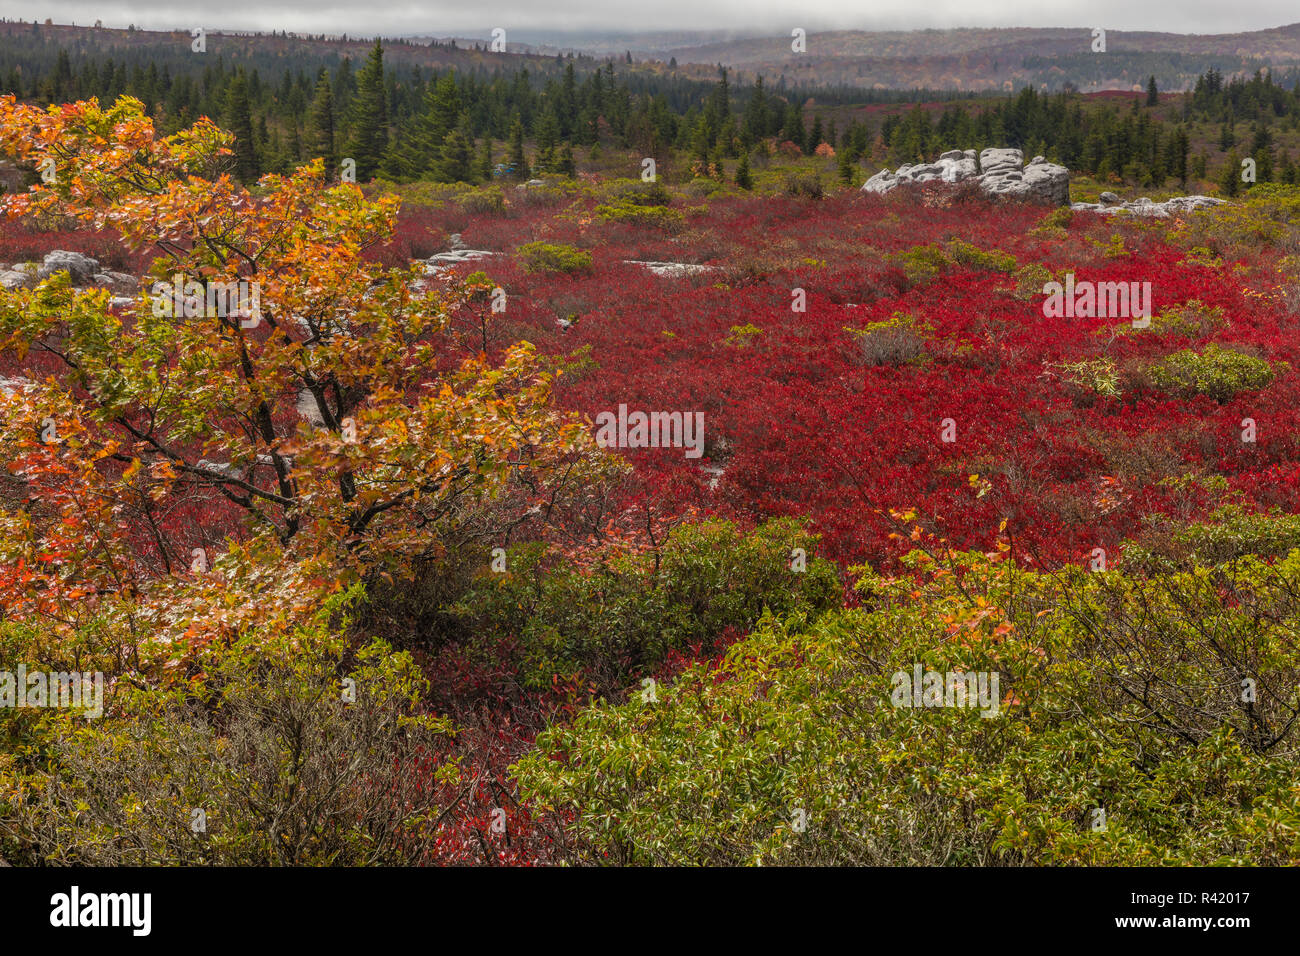 Bear Rocks in autumn in the Dolly Sods Wilderness, West Virginia, USA - Stock Image